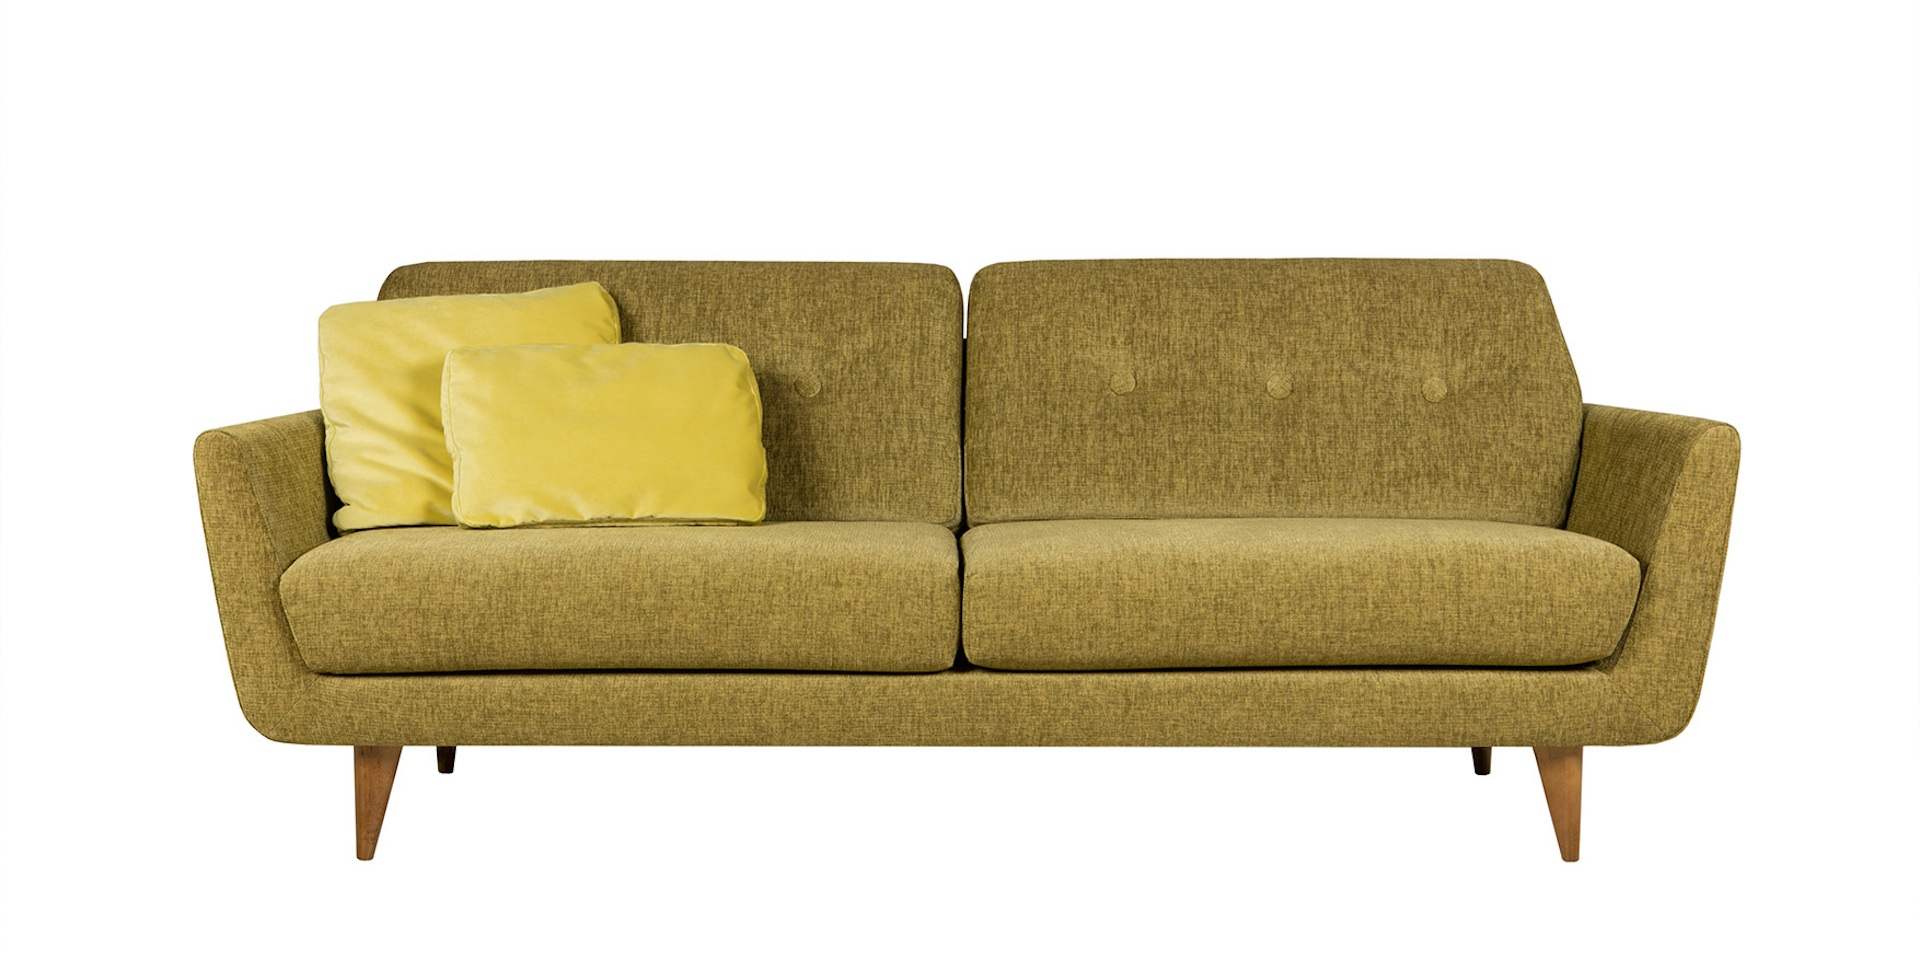 RUCOLA_3seater_buttons_divine36_mustard_5